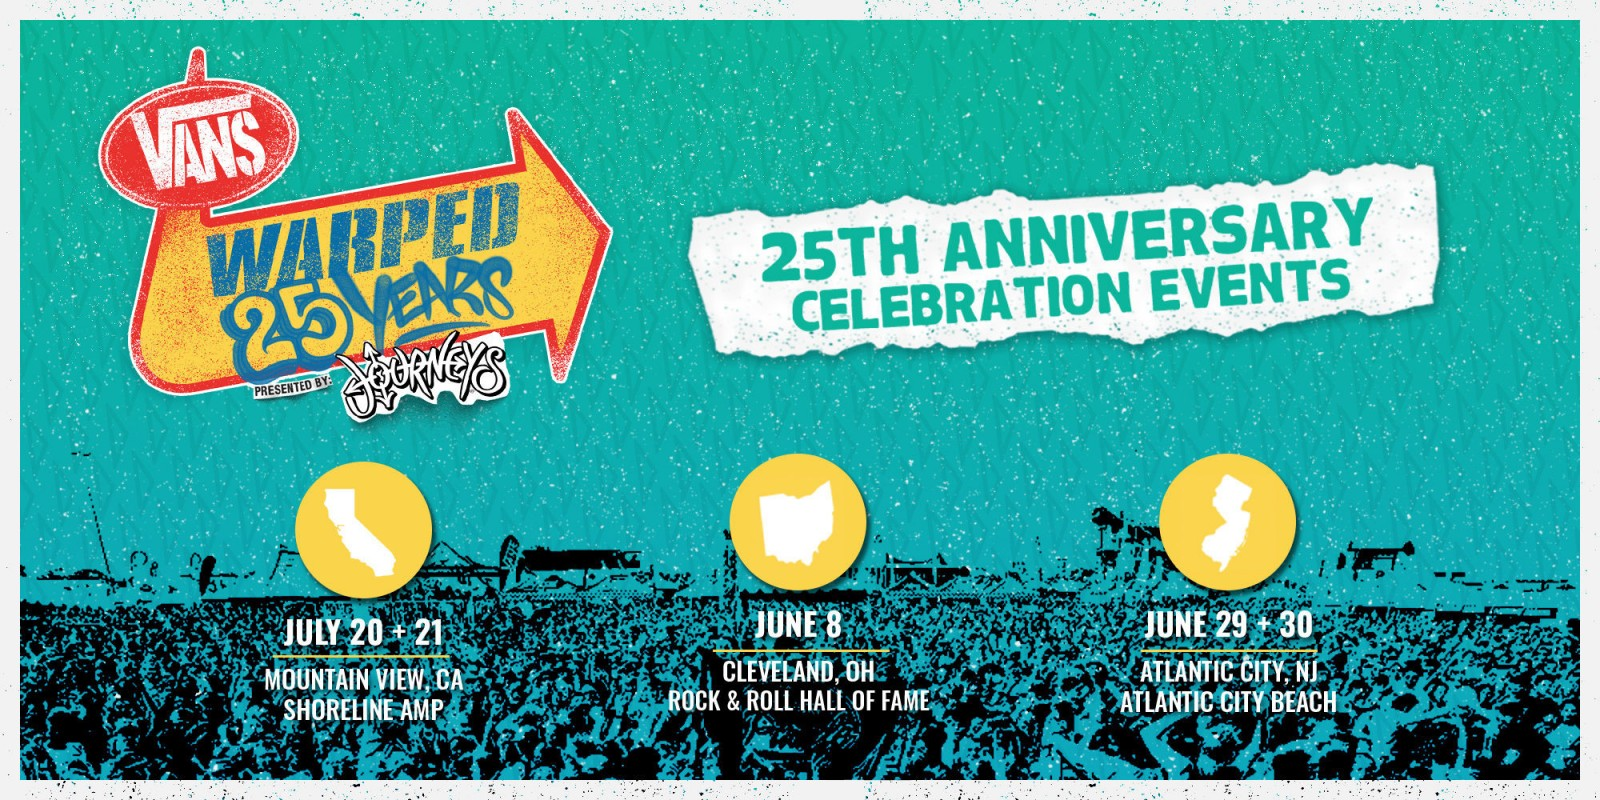 Vans Warped Tour 25th anniversary announcement assets